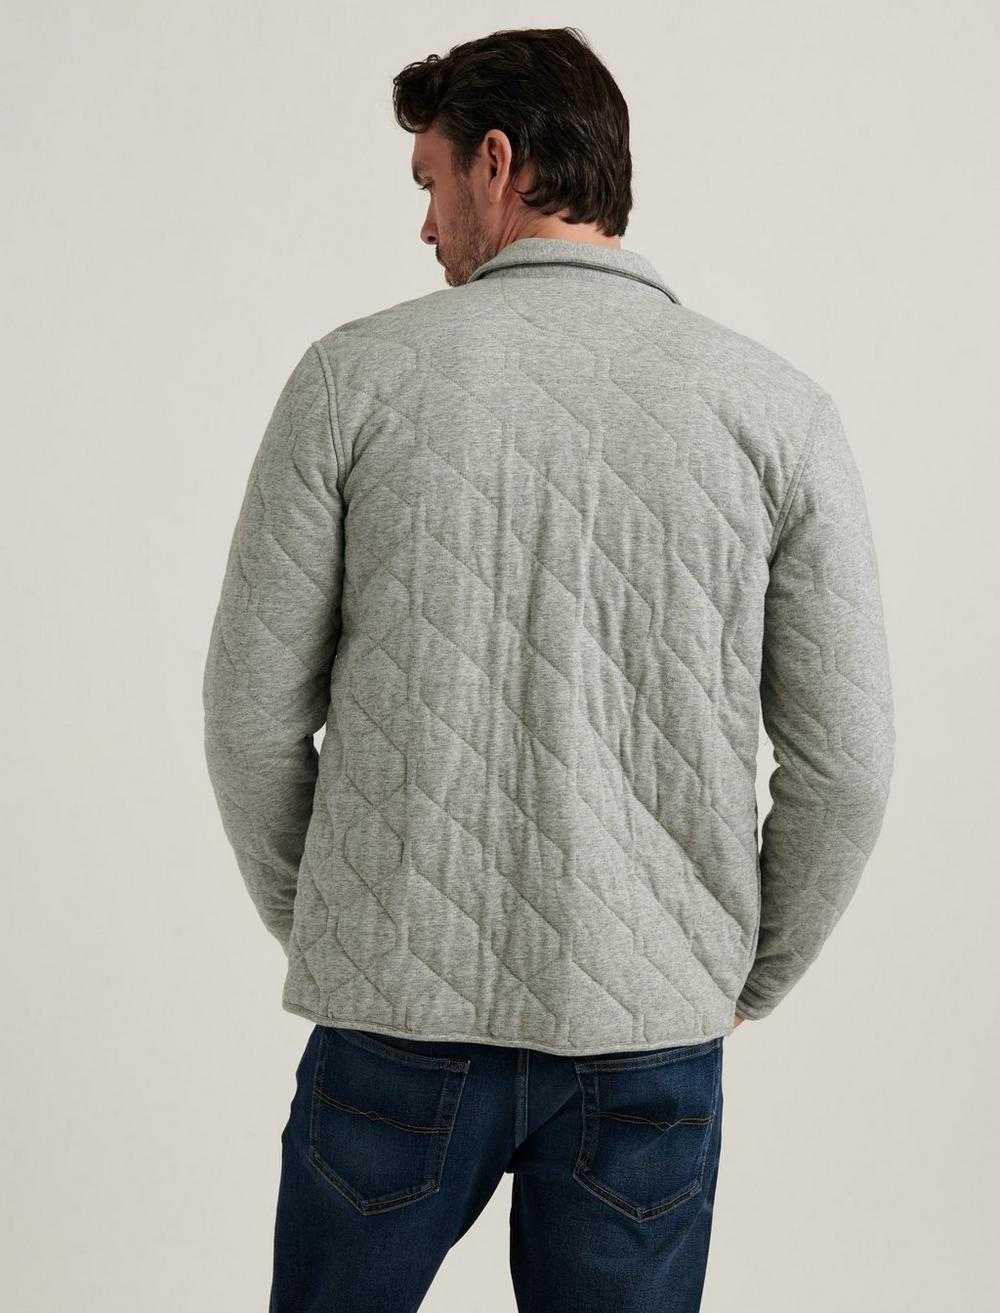 QUILTED JACKET, image 4